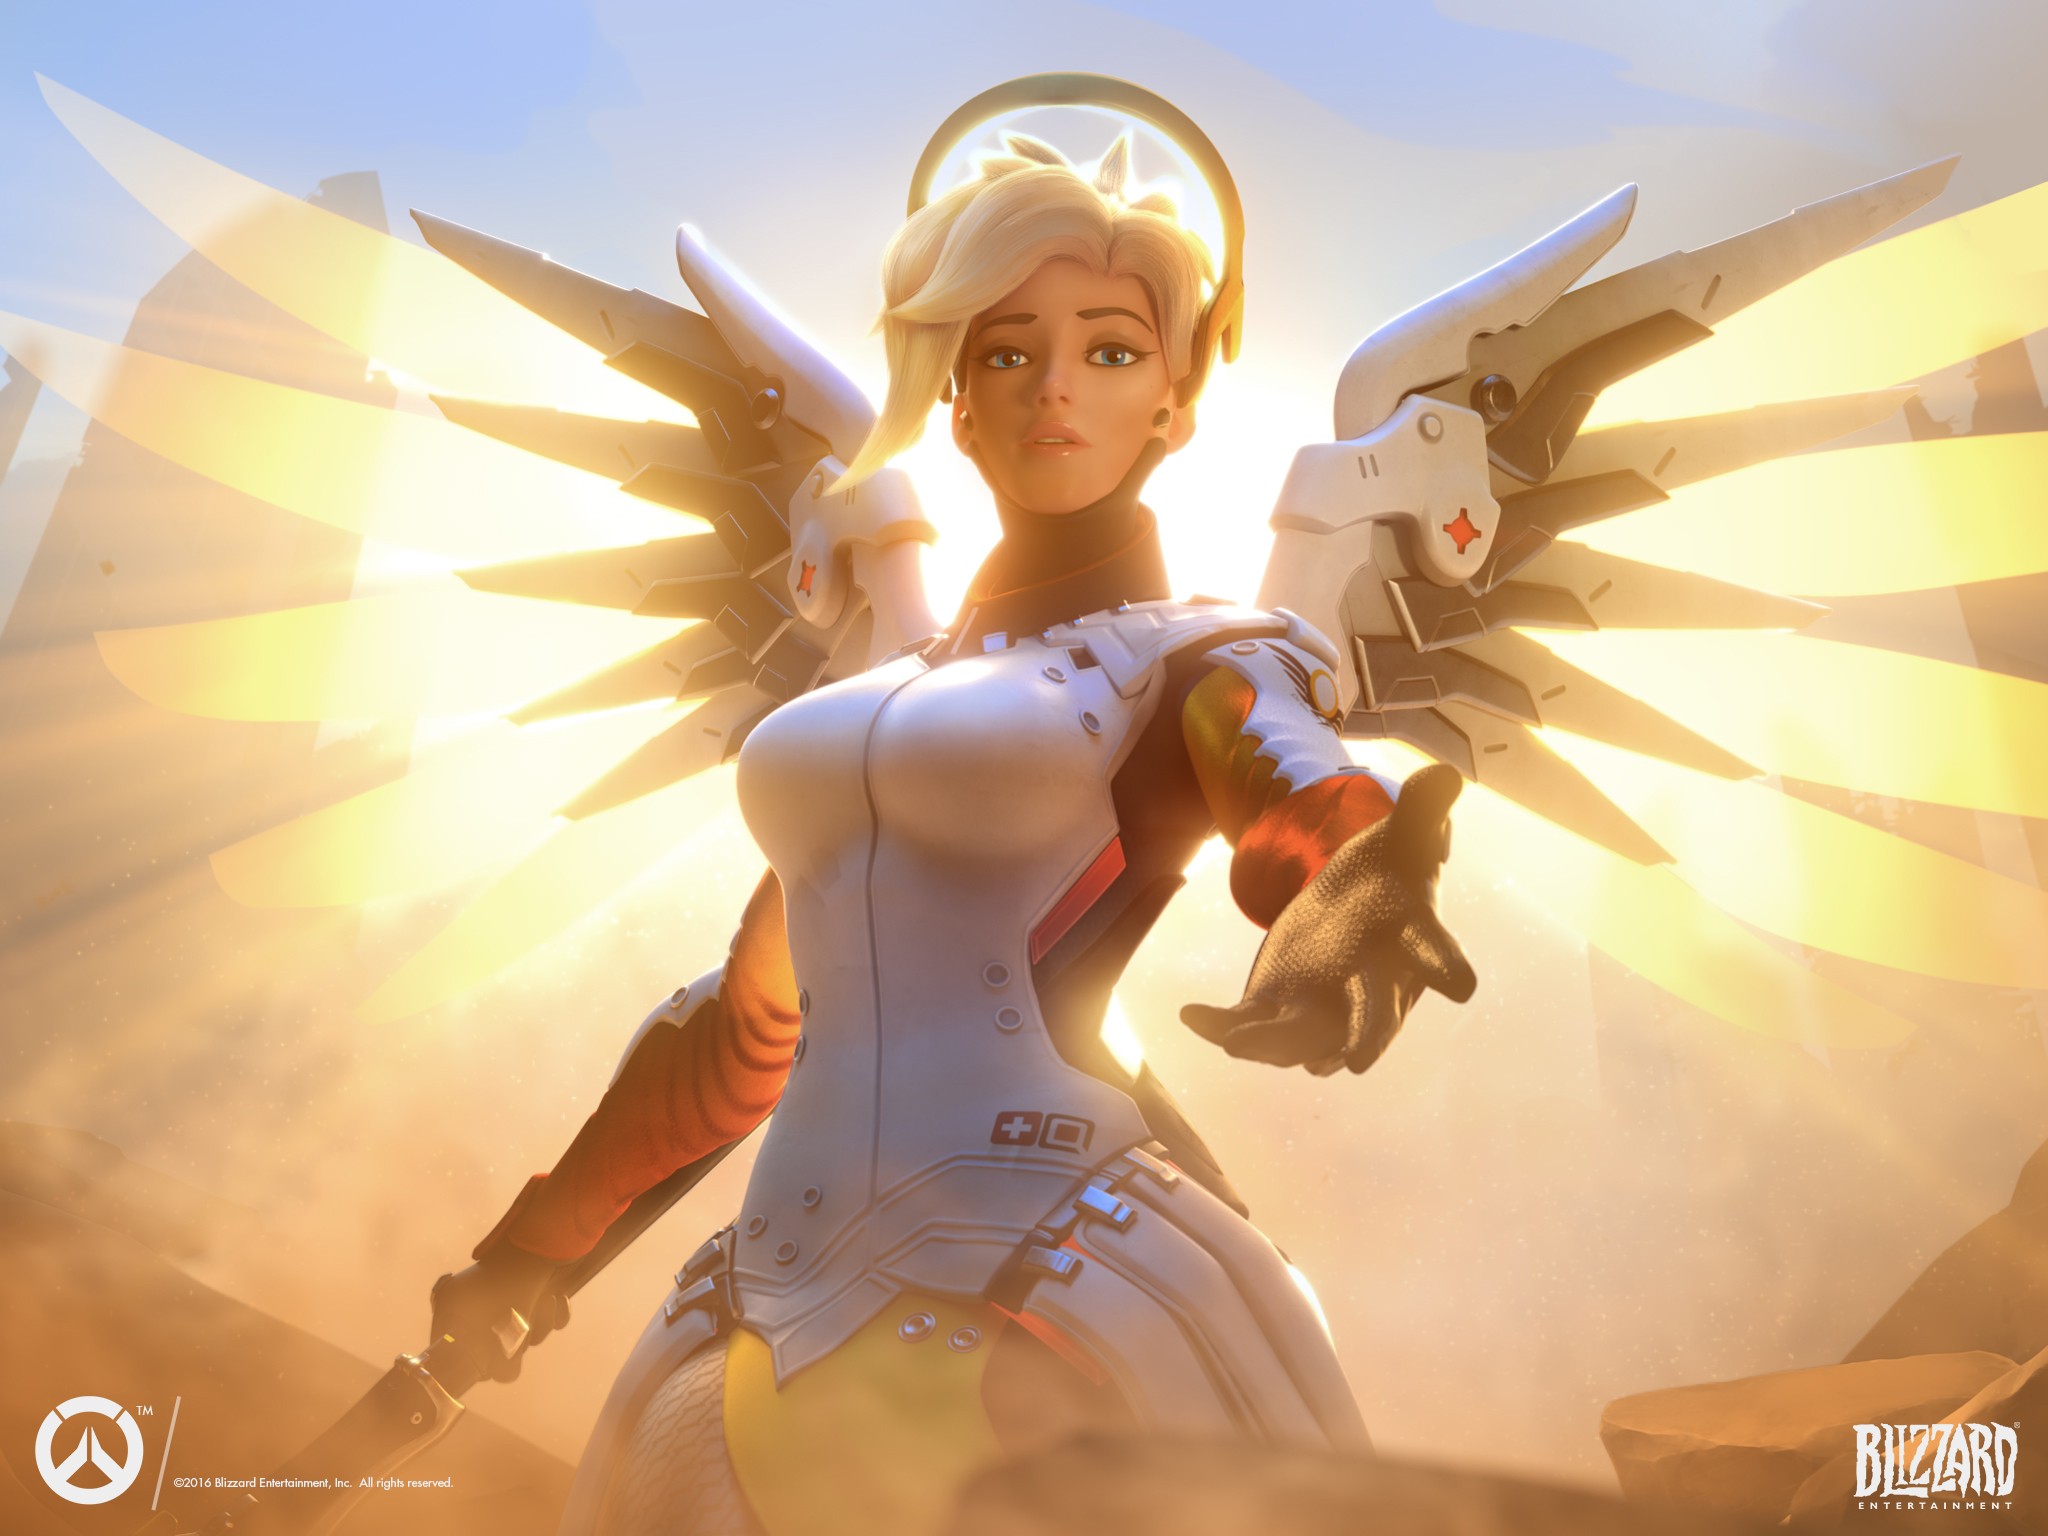 The Valkyrie Can Fly - Mercy Drastically Changed